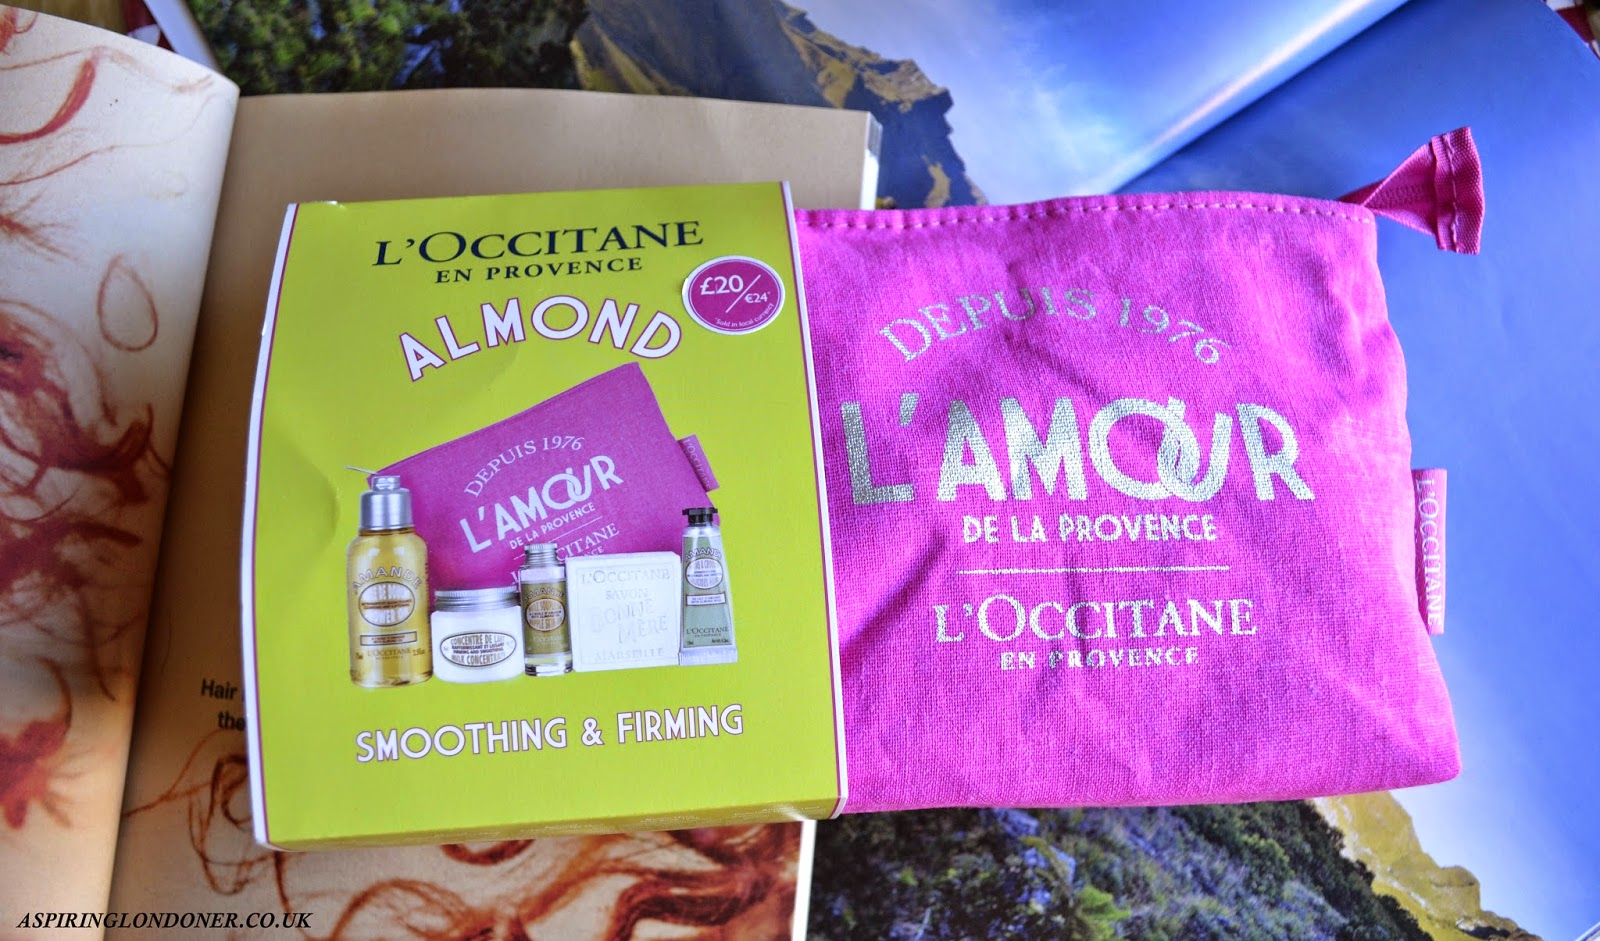 L'Occitane Almond Discovery Collection - Aspiring Londoner